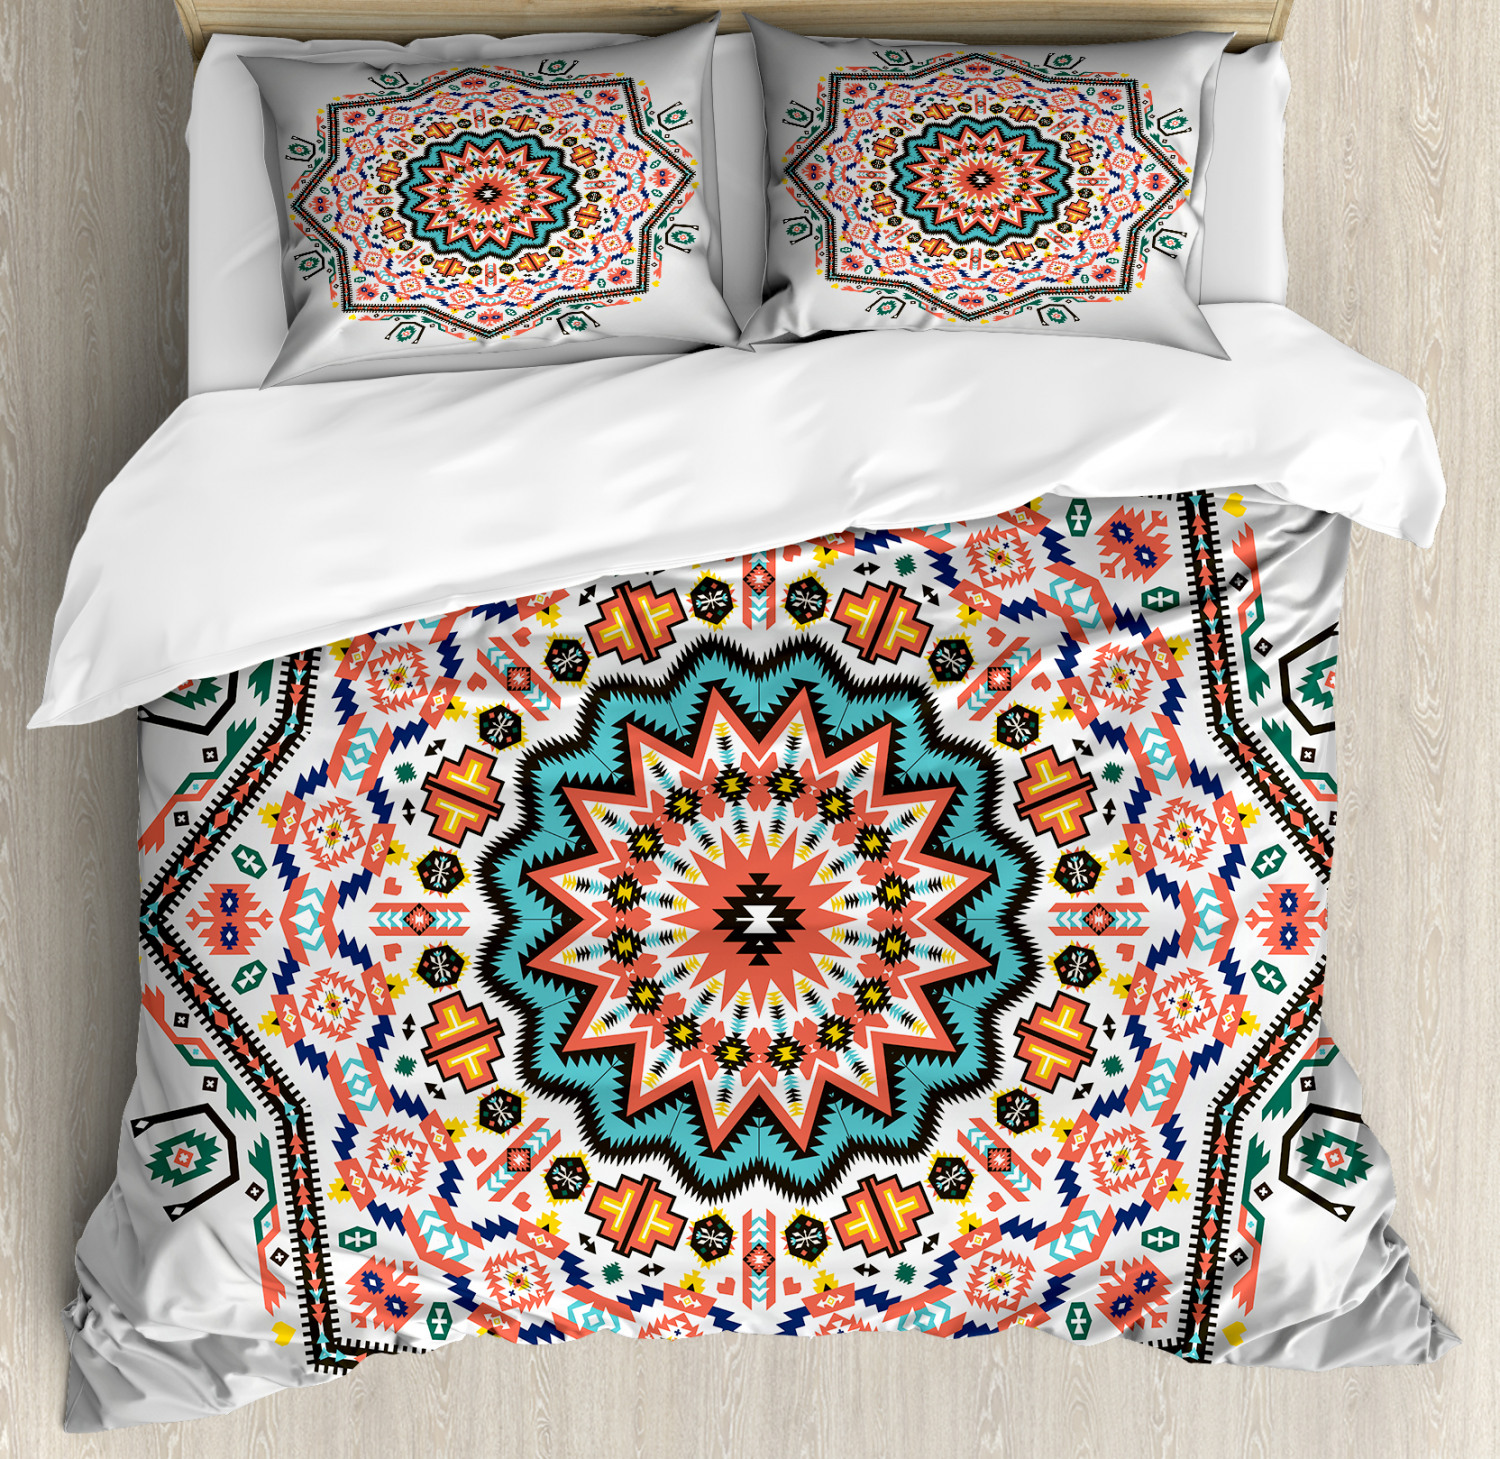 Tribal Duvet Cover Set with Pillow Shams Abstract Sun Aztec Style Print